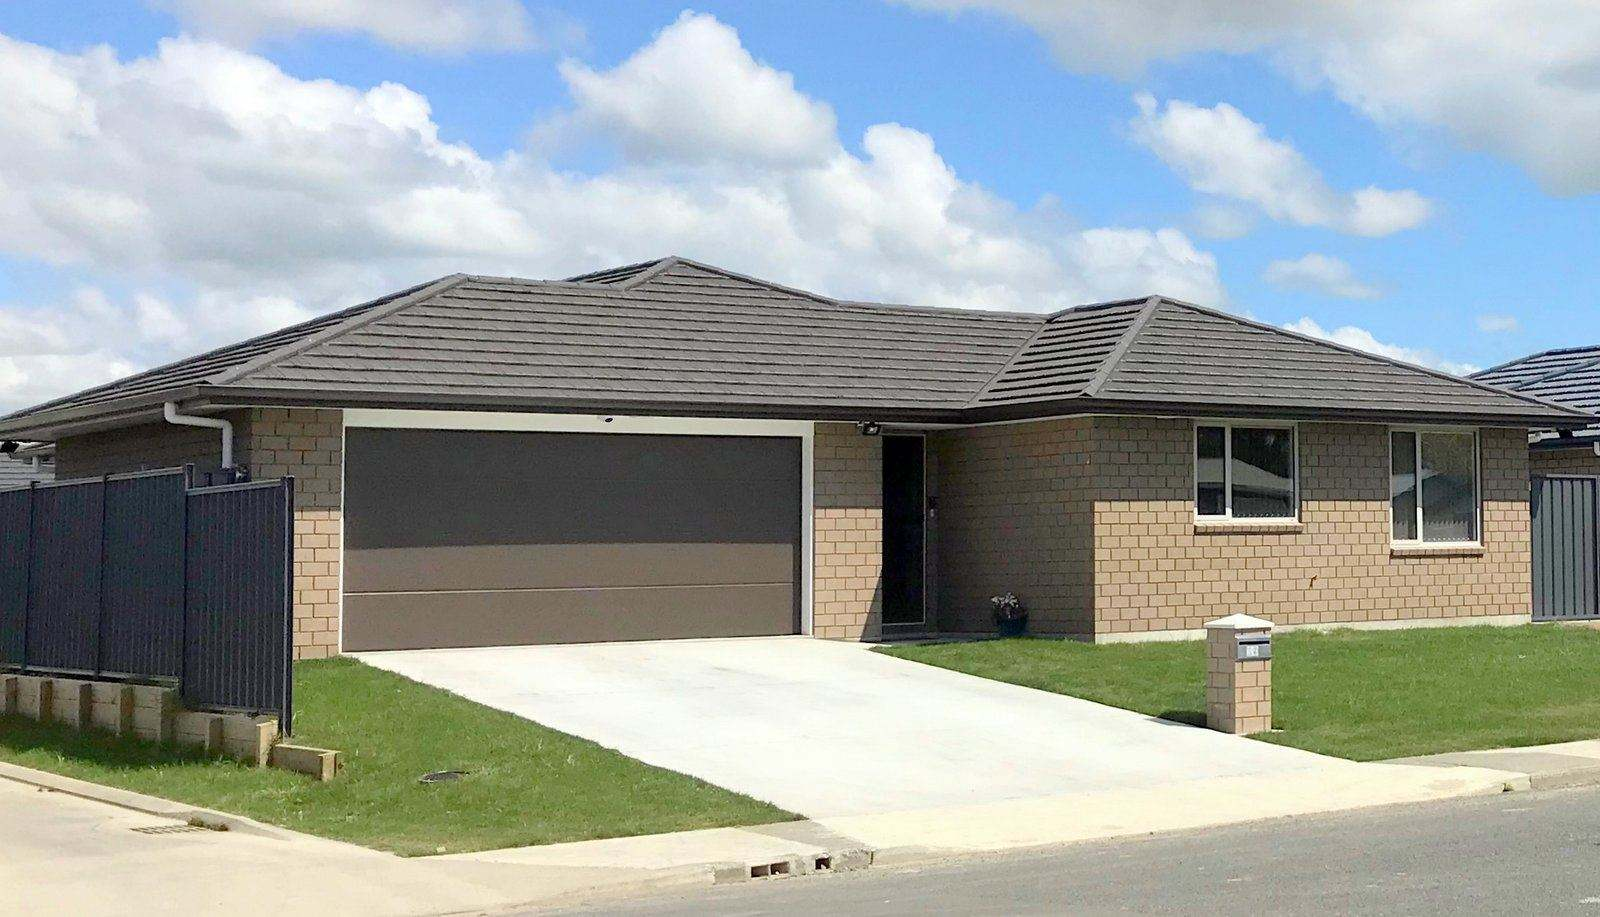 Waipukurau and Surrounds 3房 House and Land Package Available!